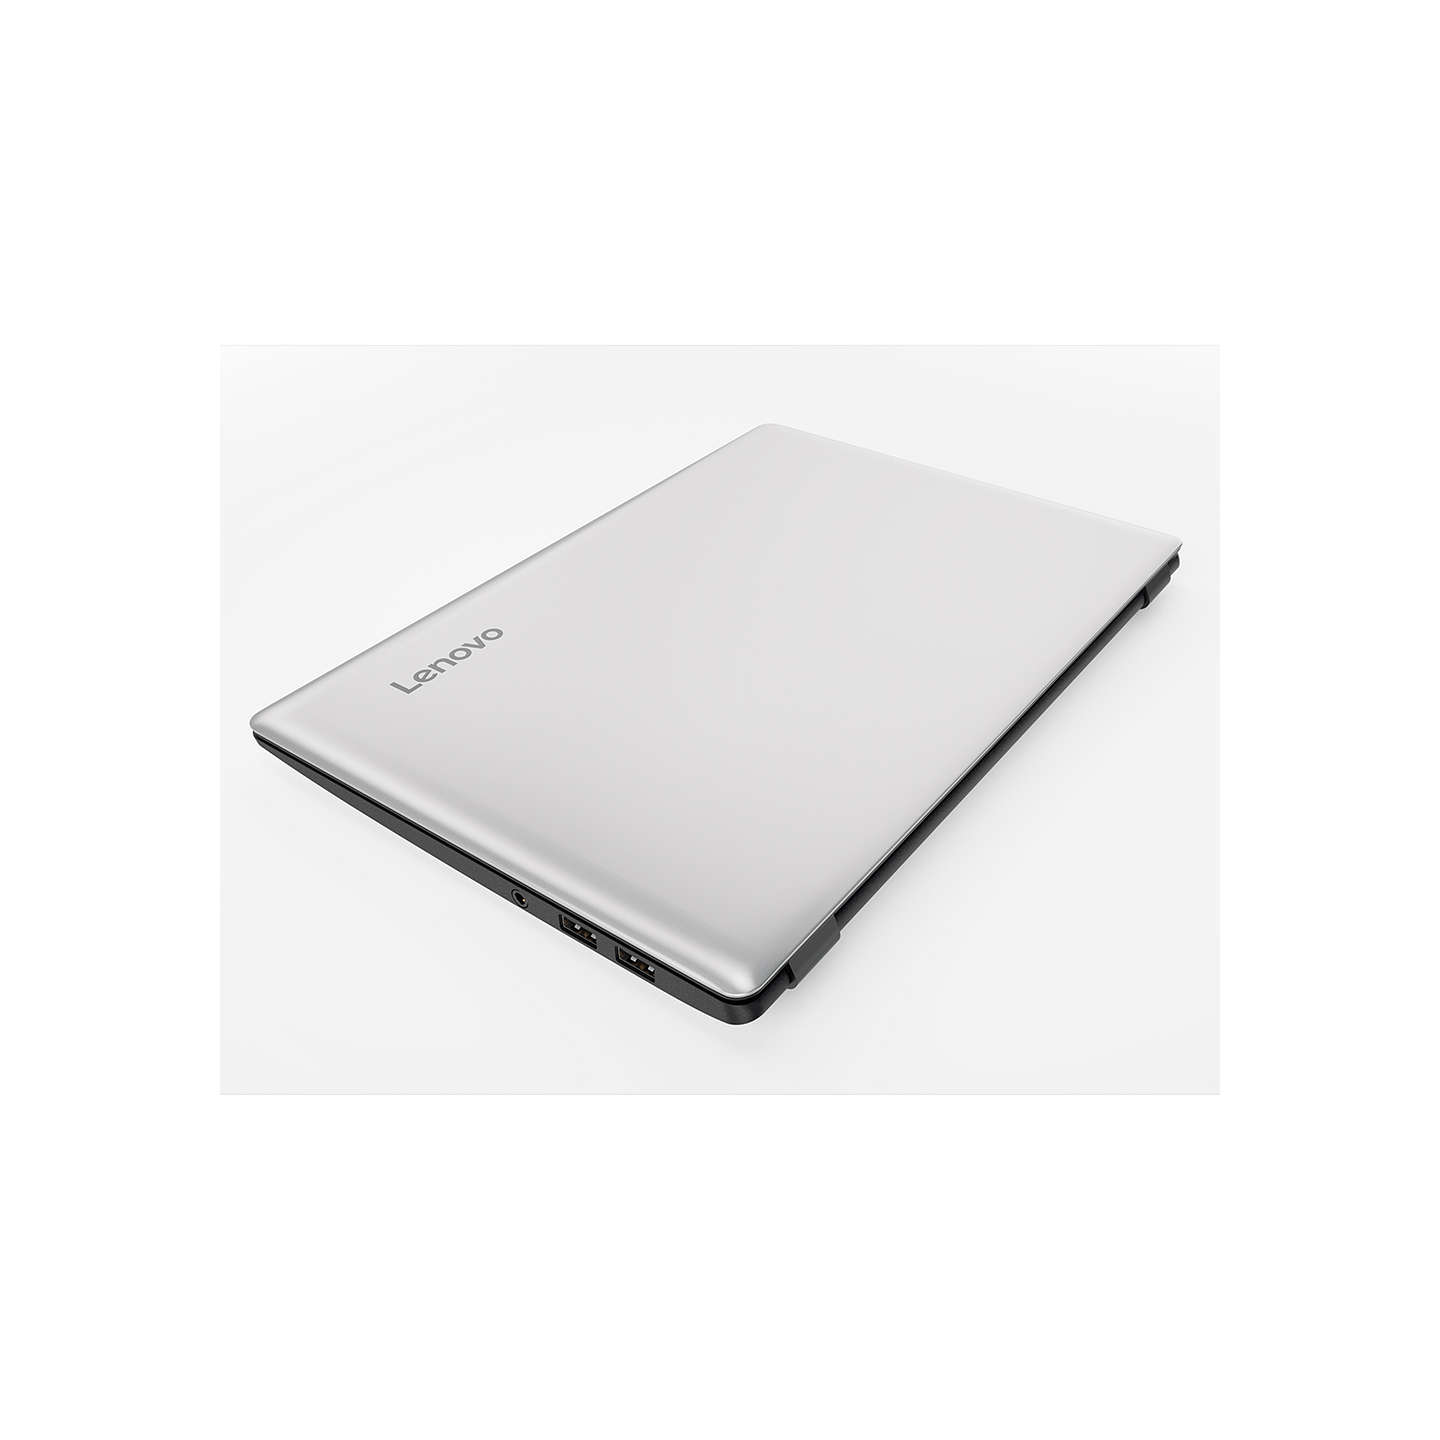 "BuyLenovo IdeaPad 110S Laptop, Intel Celeron, 2GB RAM, 32GB eMMC, 11.6"" and Office 365 1 Year Subscription Included, Silver Online at johnlewis.com"